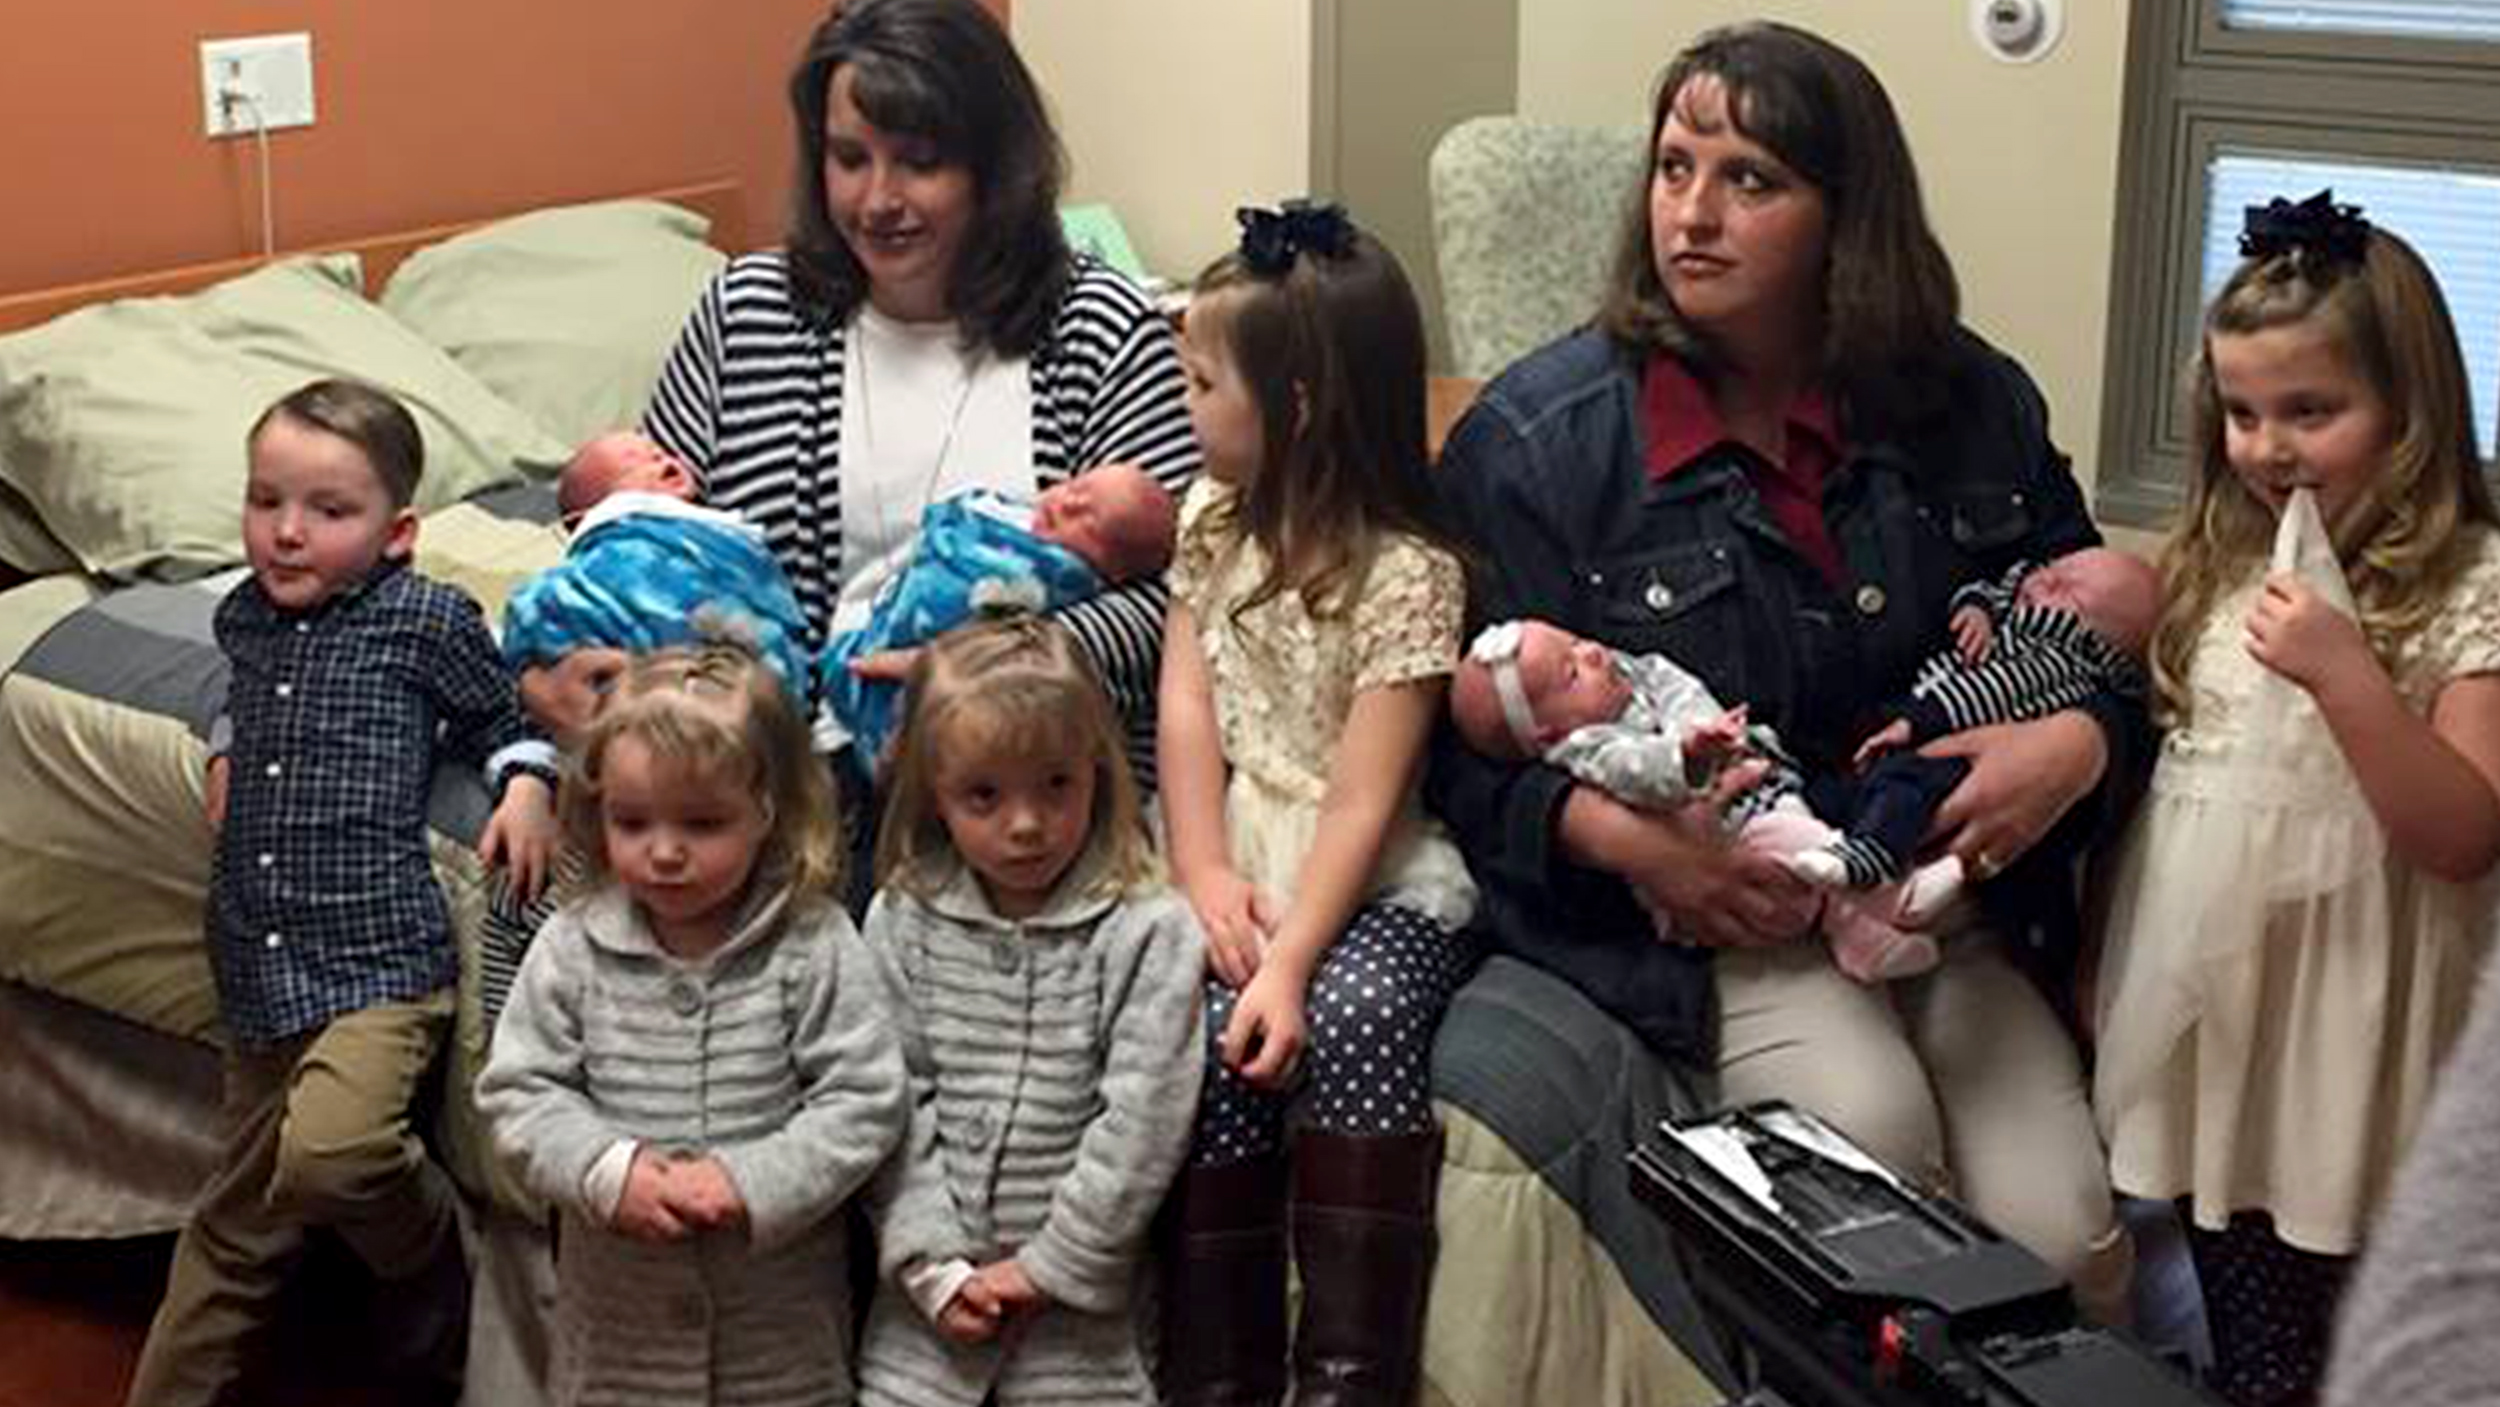 Identical twins each give birth to 2nd set of twins: 'Life